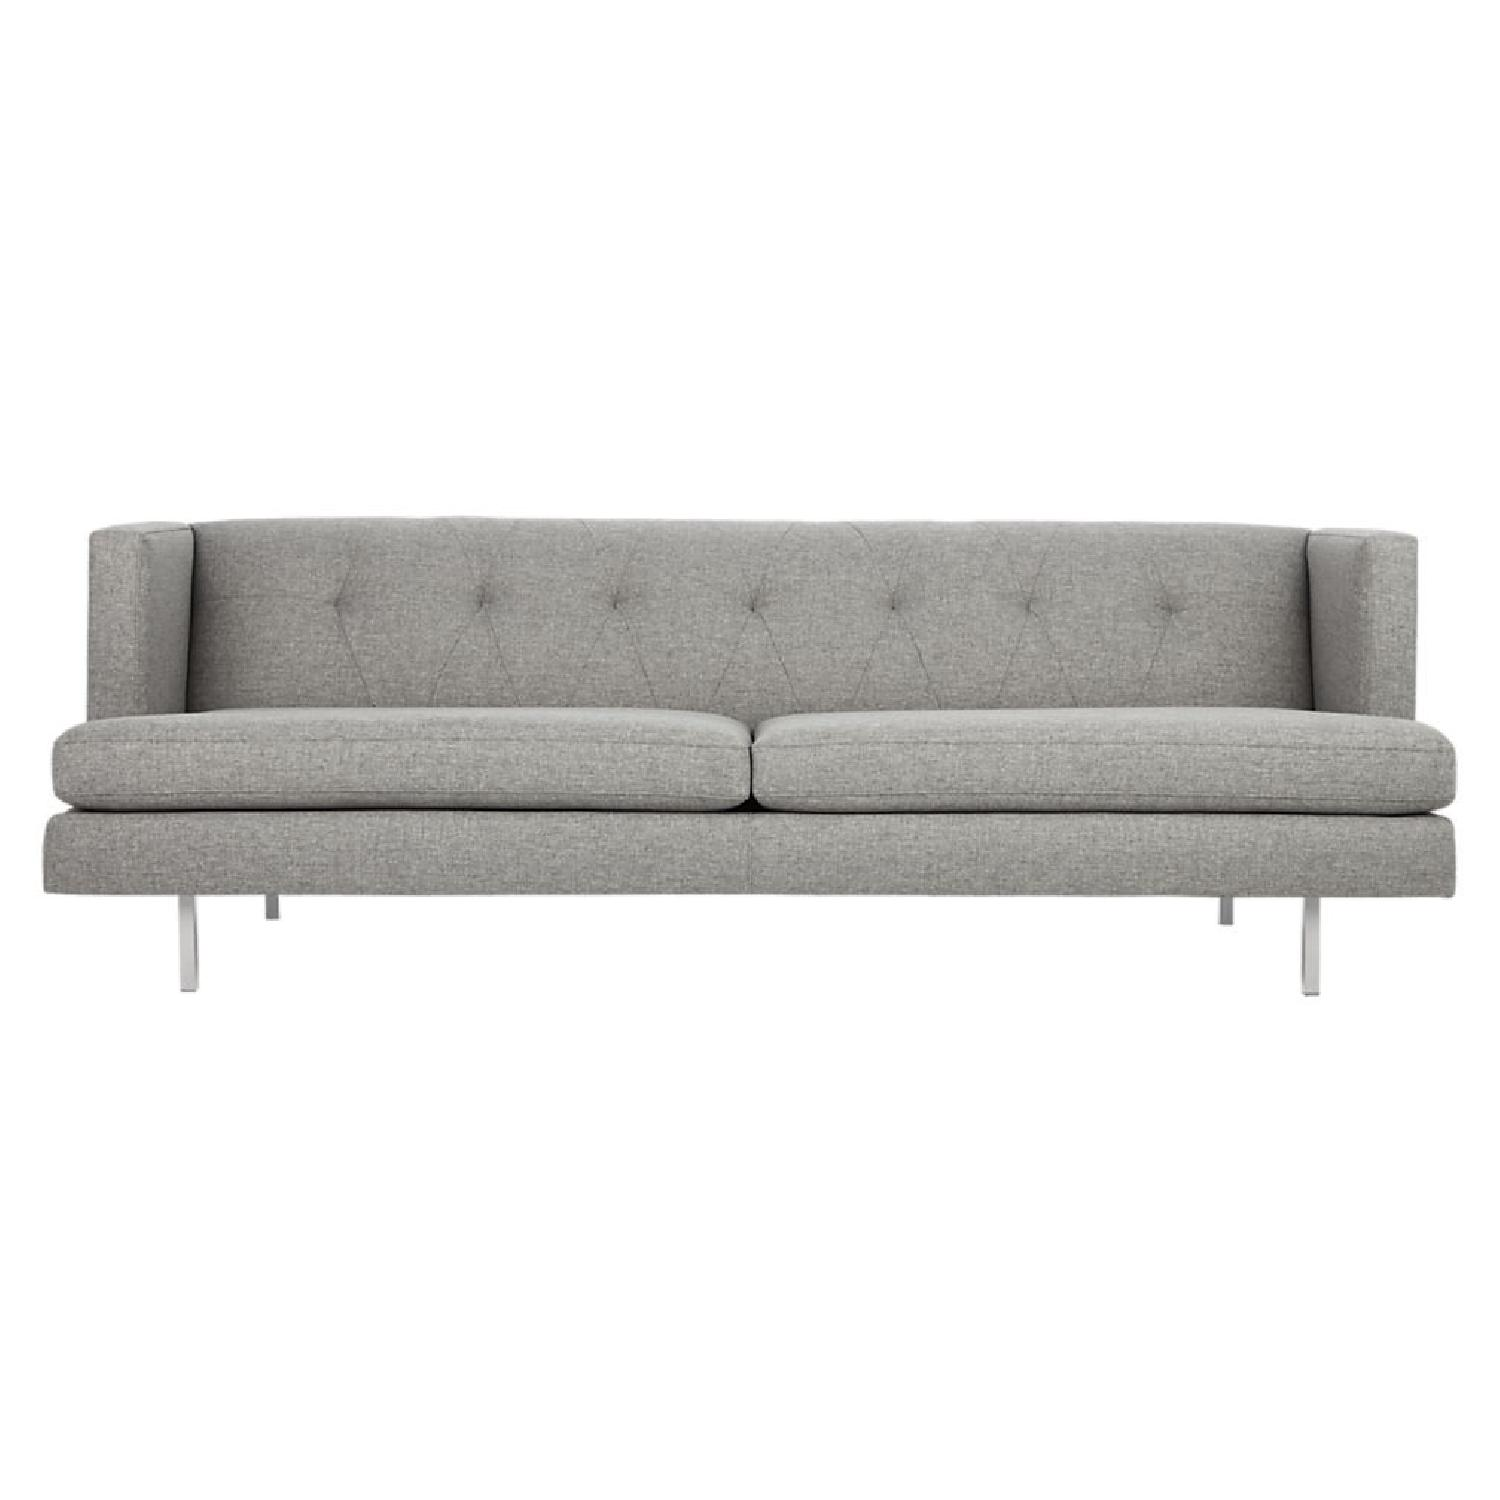 CB2 Avec Grey Sofa W/ Brushed Stainless Steel Legs ...